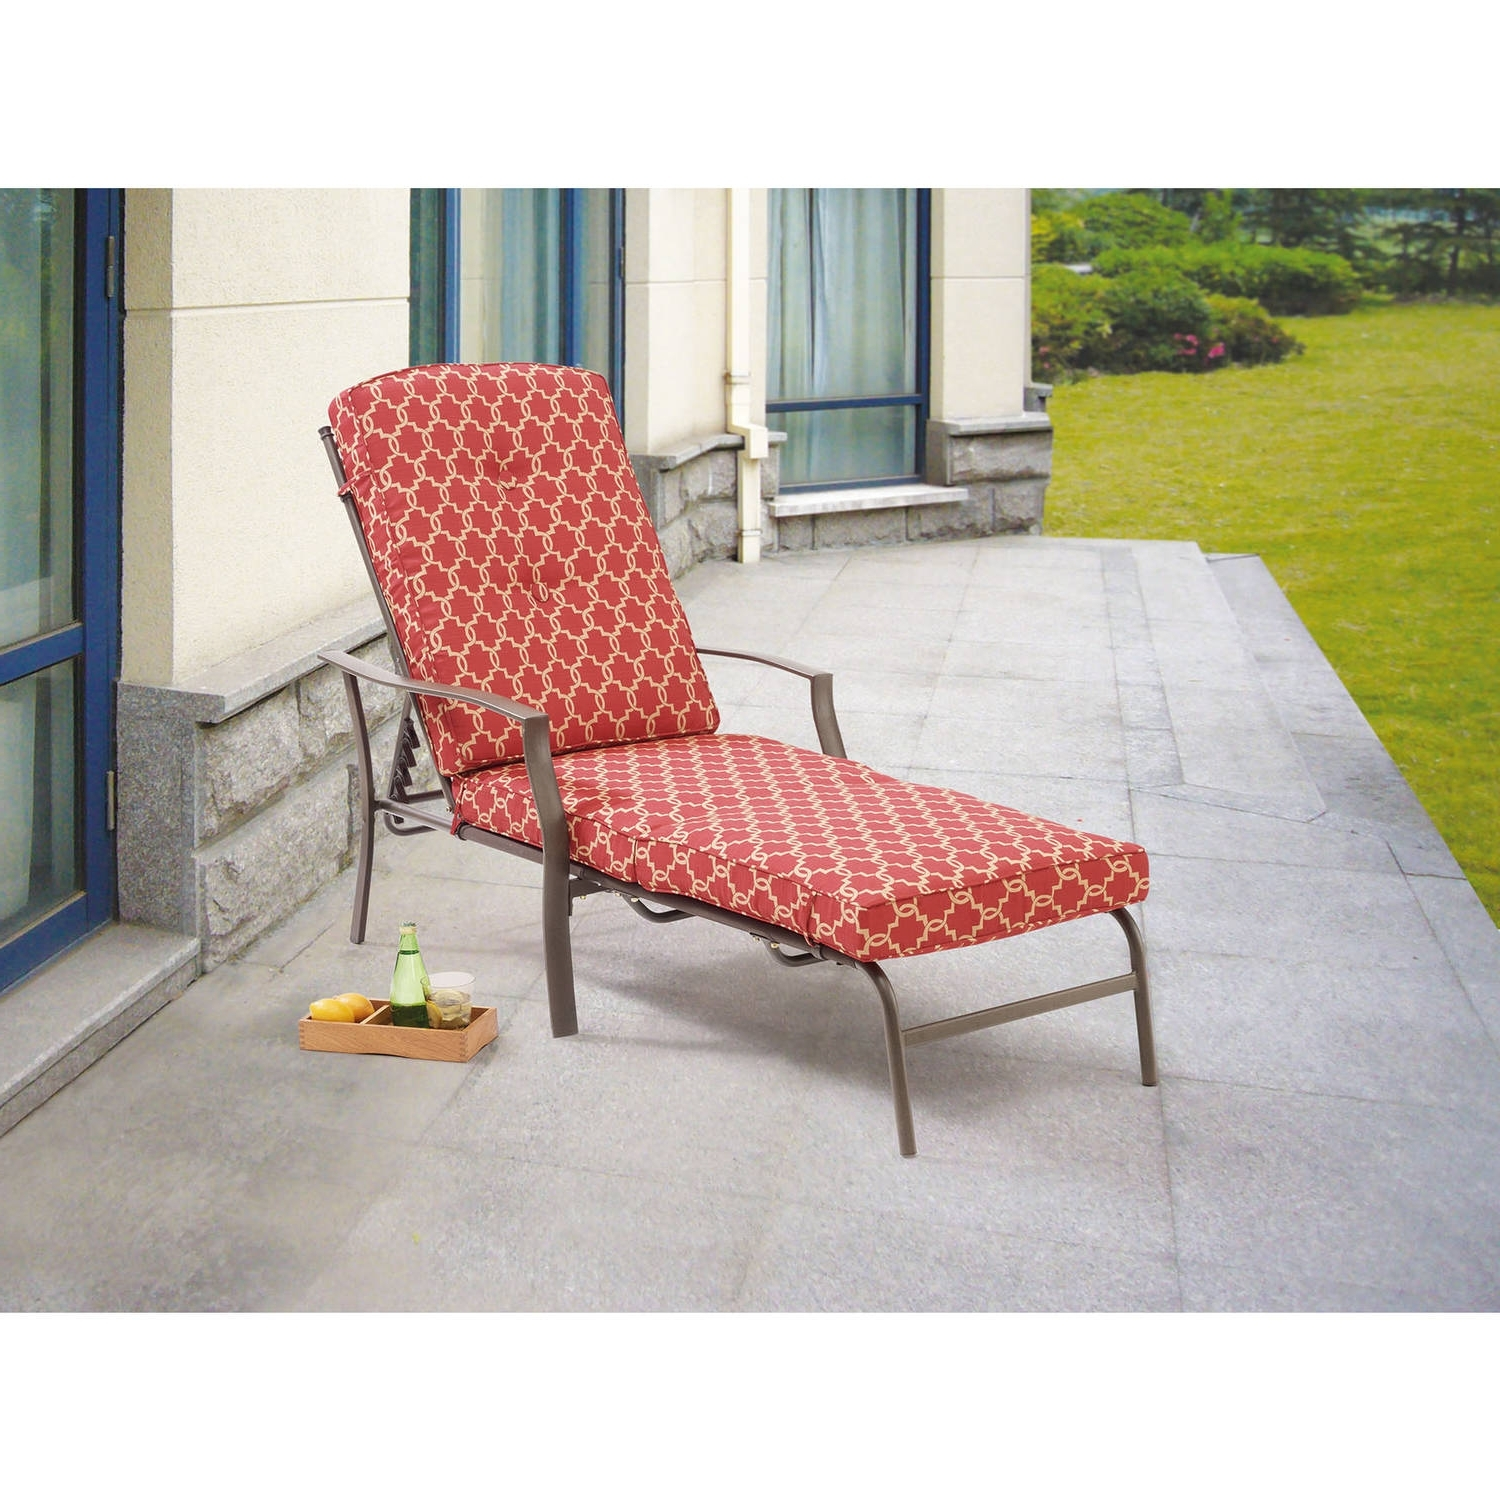 Ideas Collection Martha Stewart Chaise Lounge In Chaise Lounge throughout Most Up-to-Date Martha Stewart Chaise Lounges